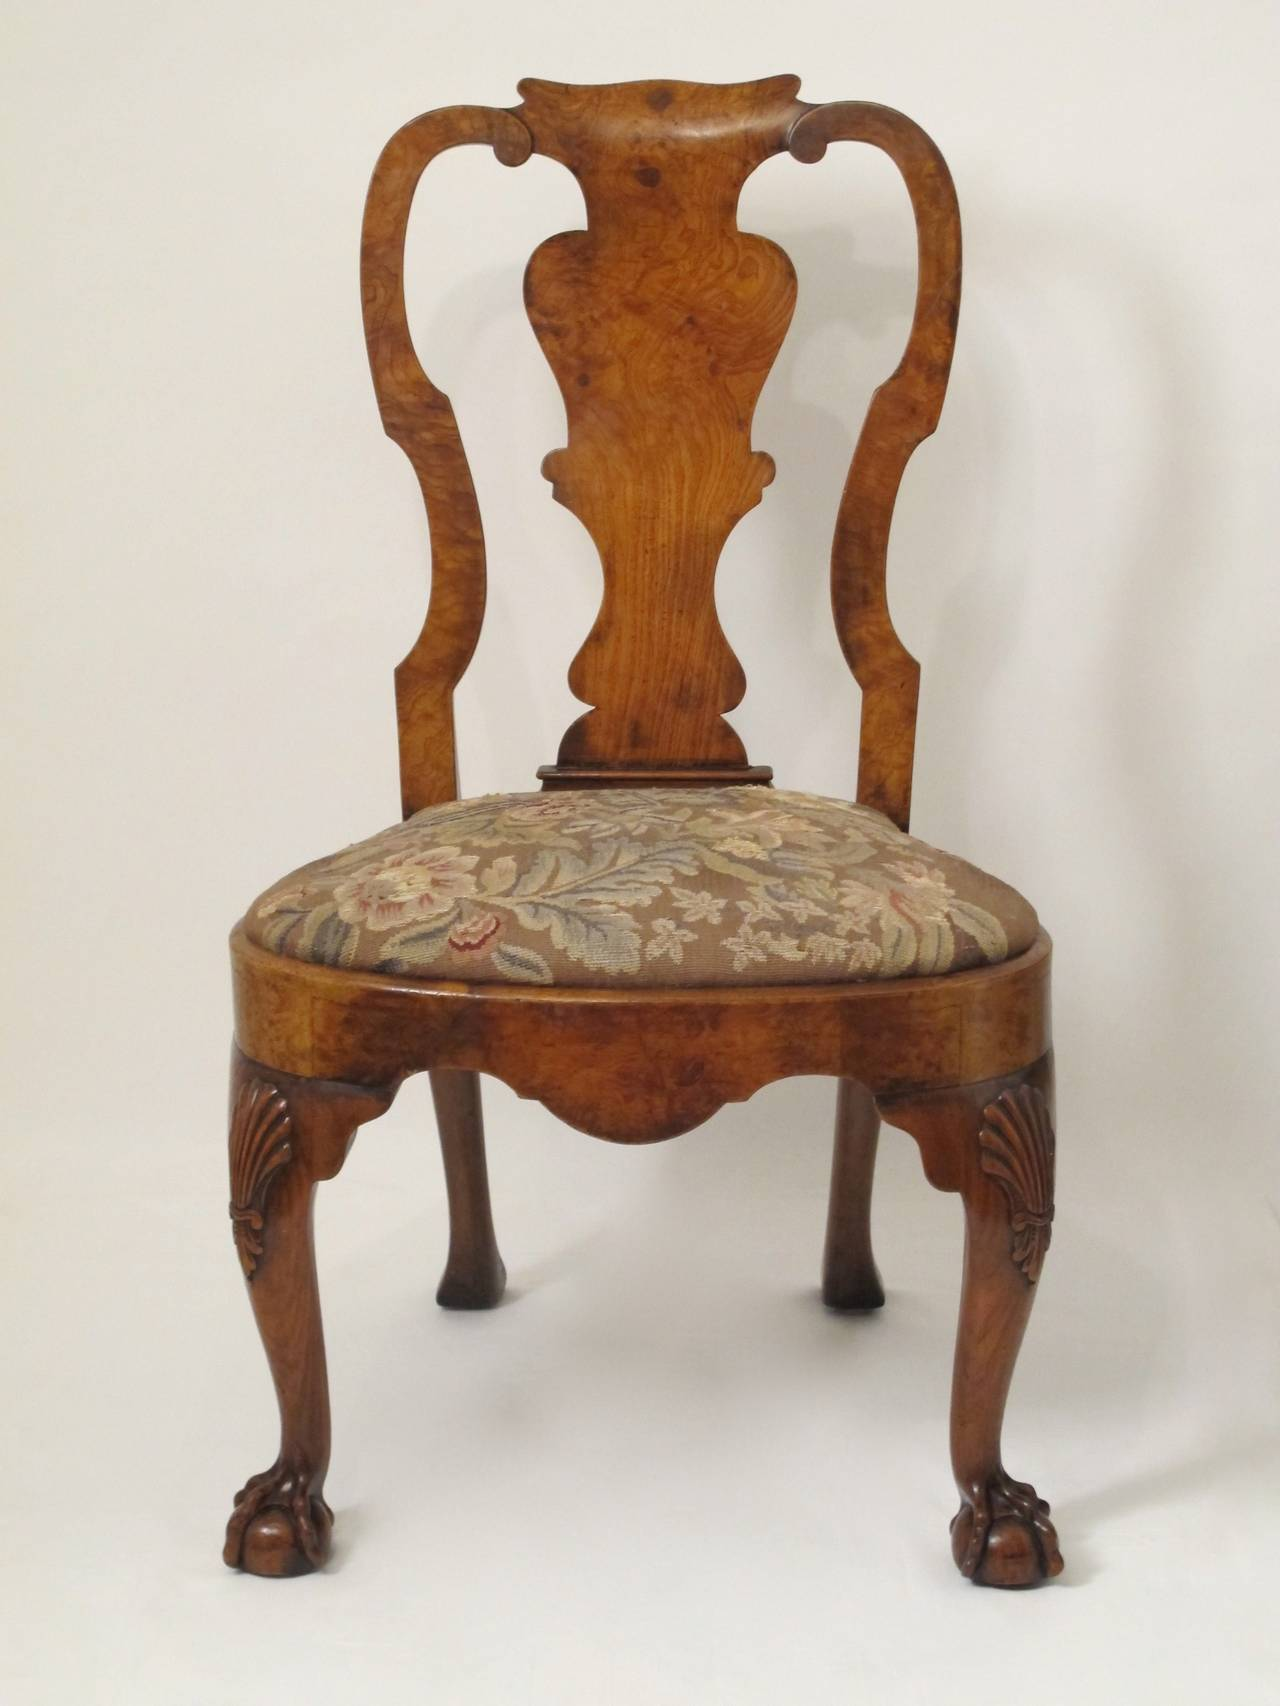 queen anne style chair hide a bed sleeper walnut side or desk at 1stdibs